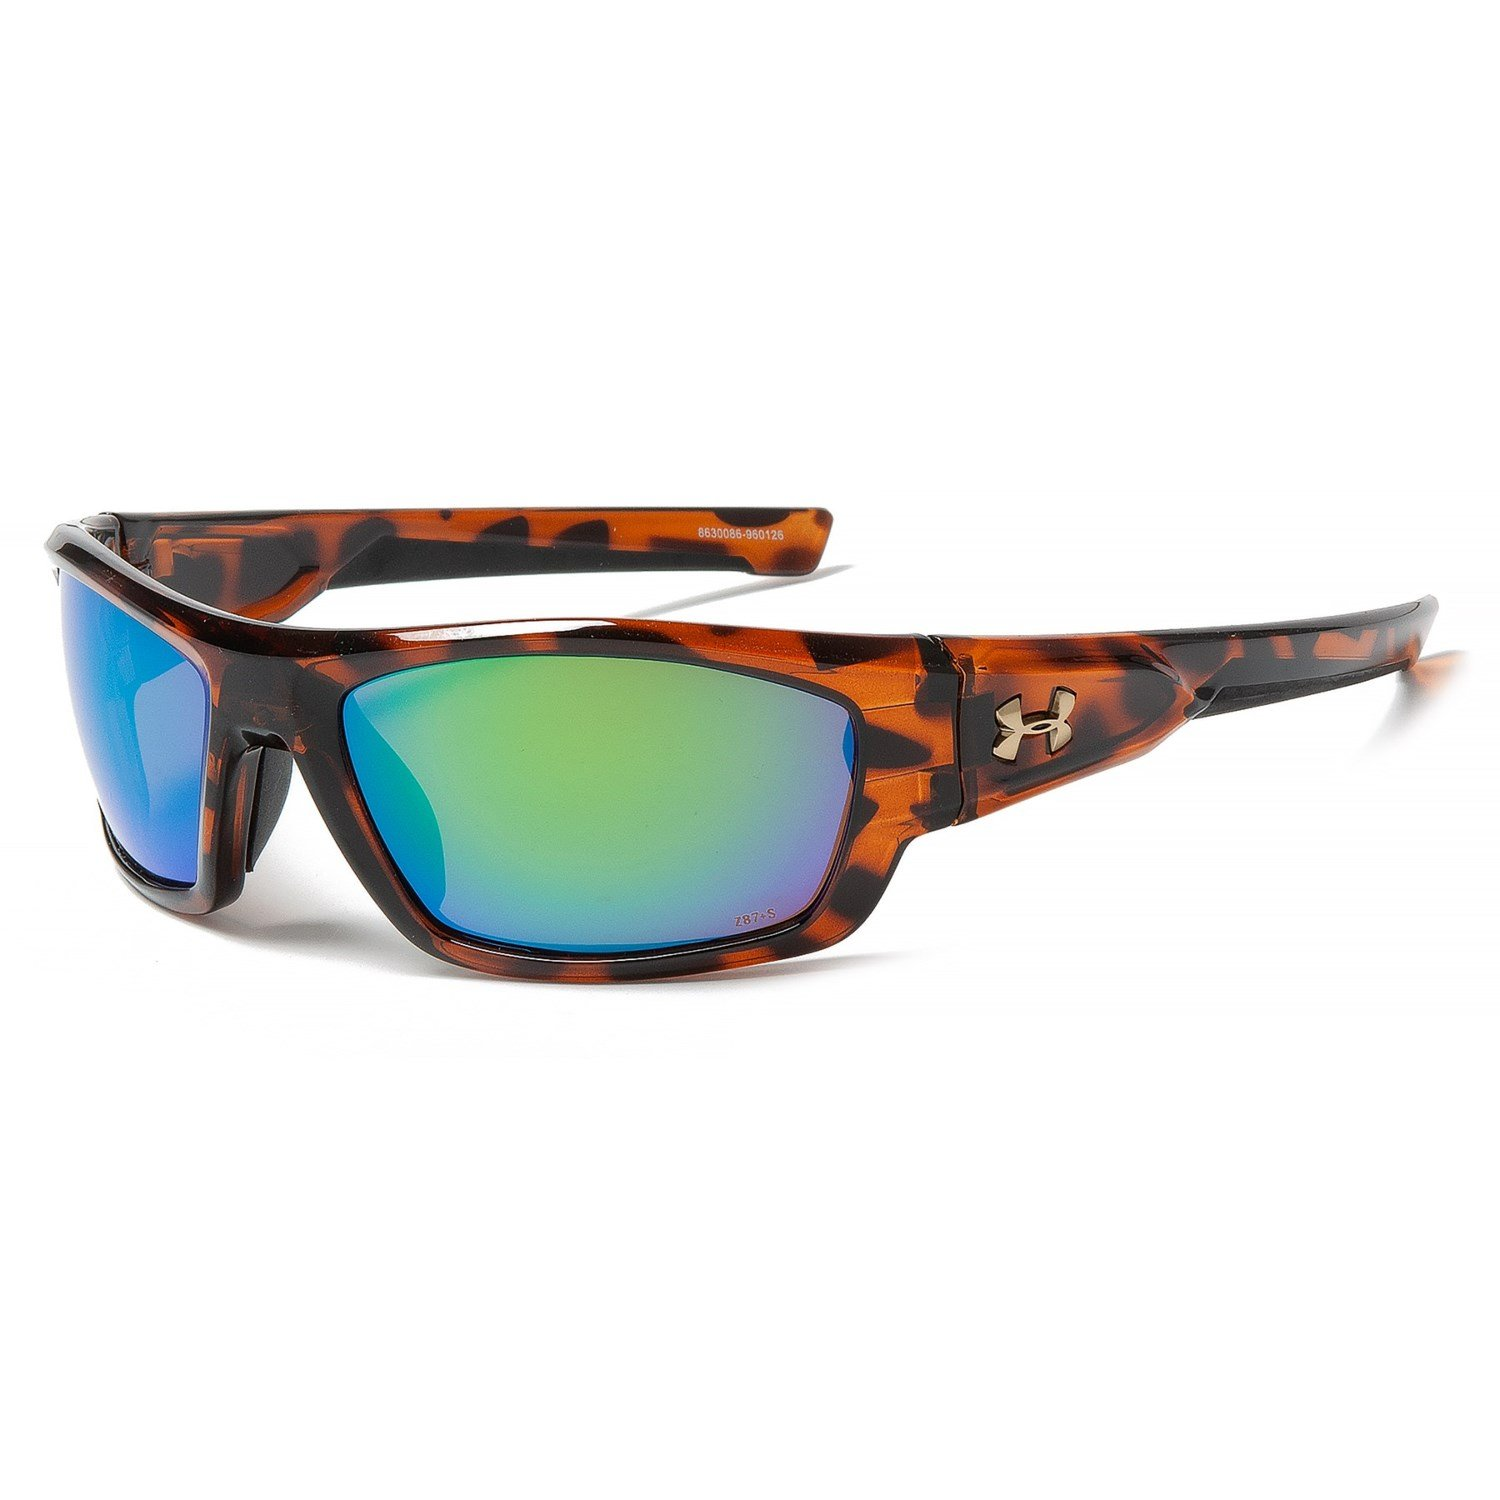 9c8abfd57a6 Under Armour UA Force Sunglasses (Crystal Tortoise Copper Green